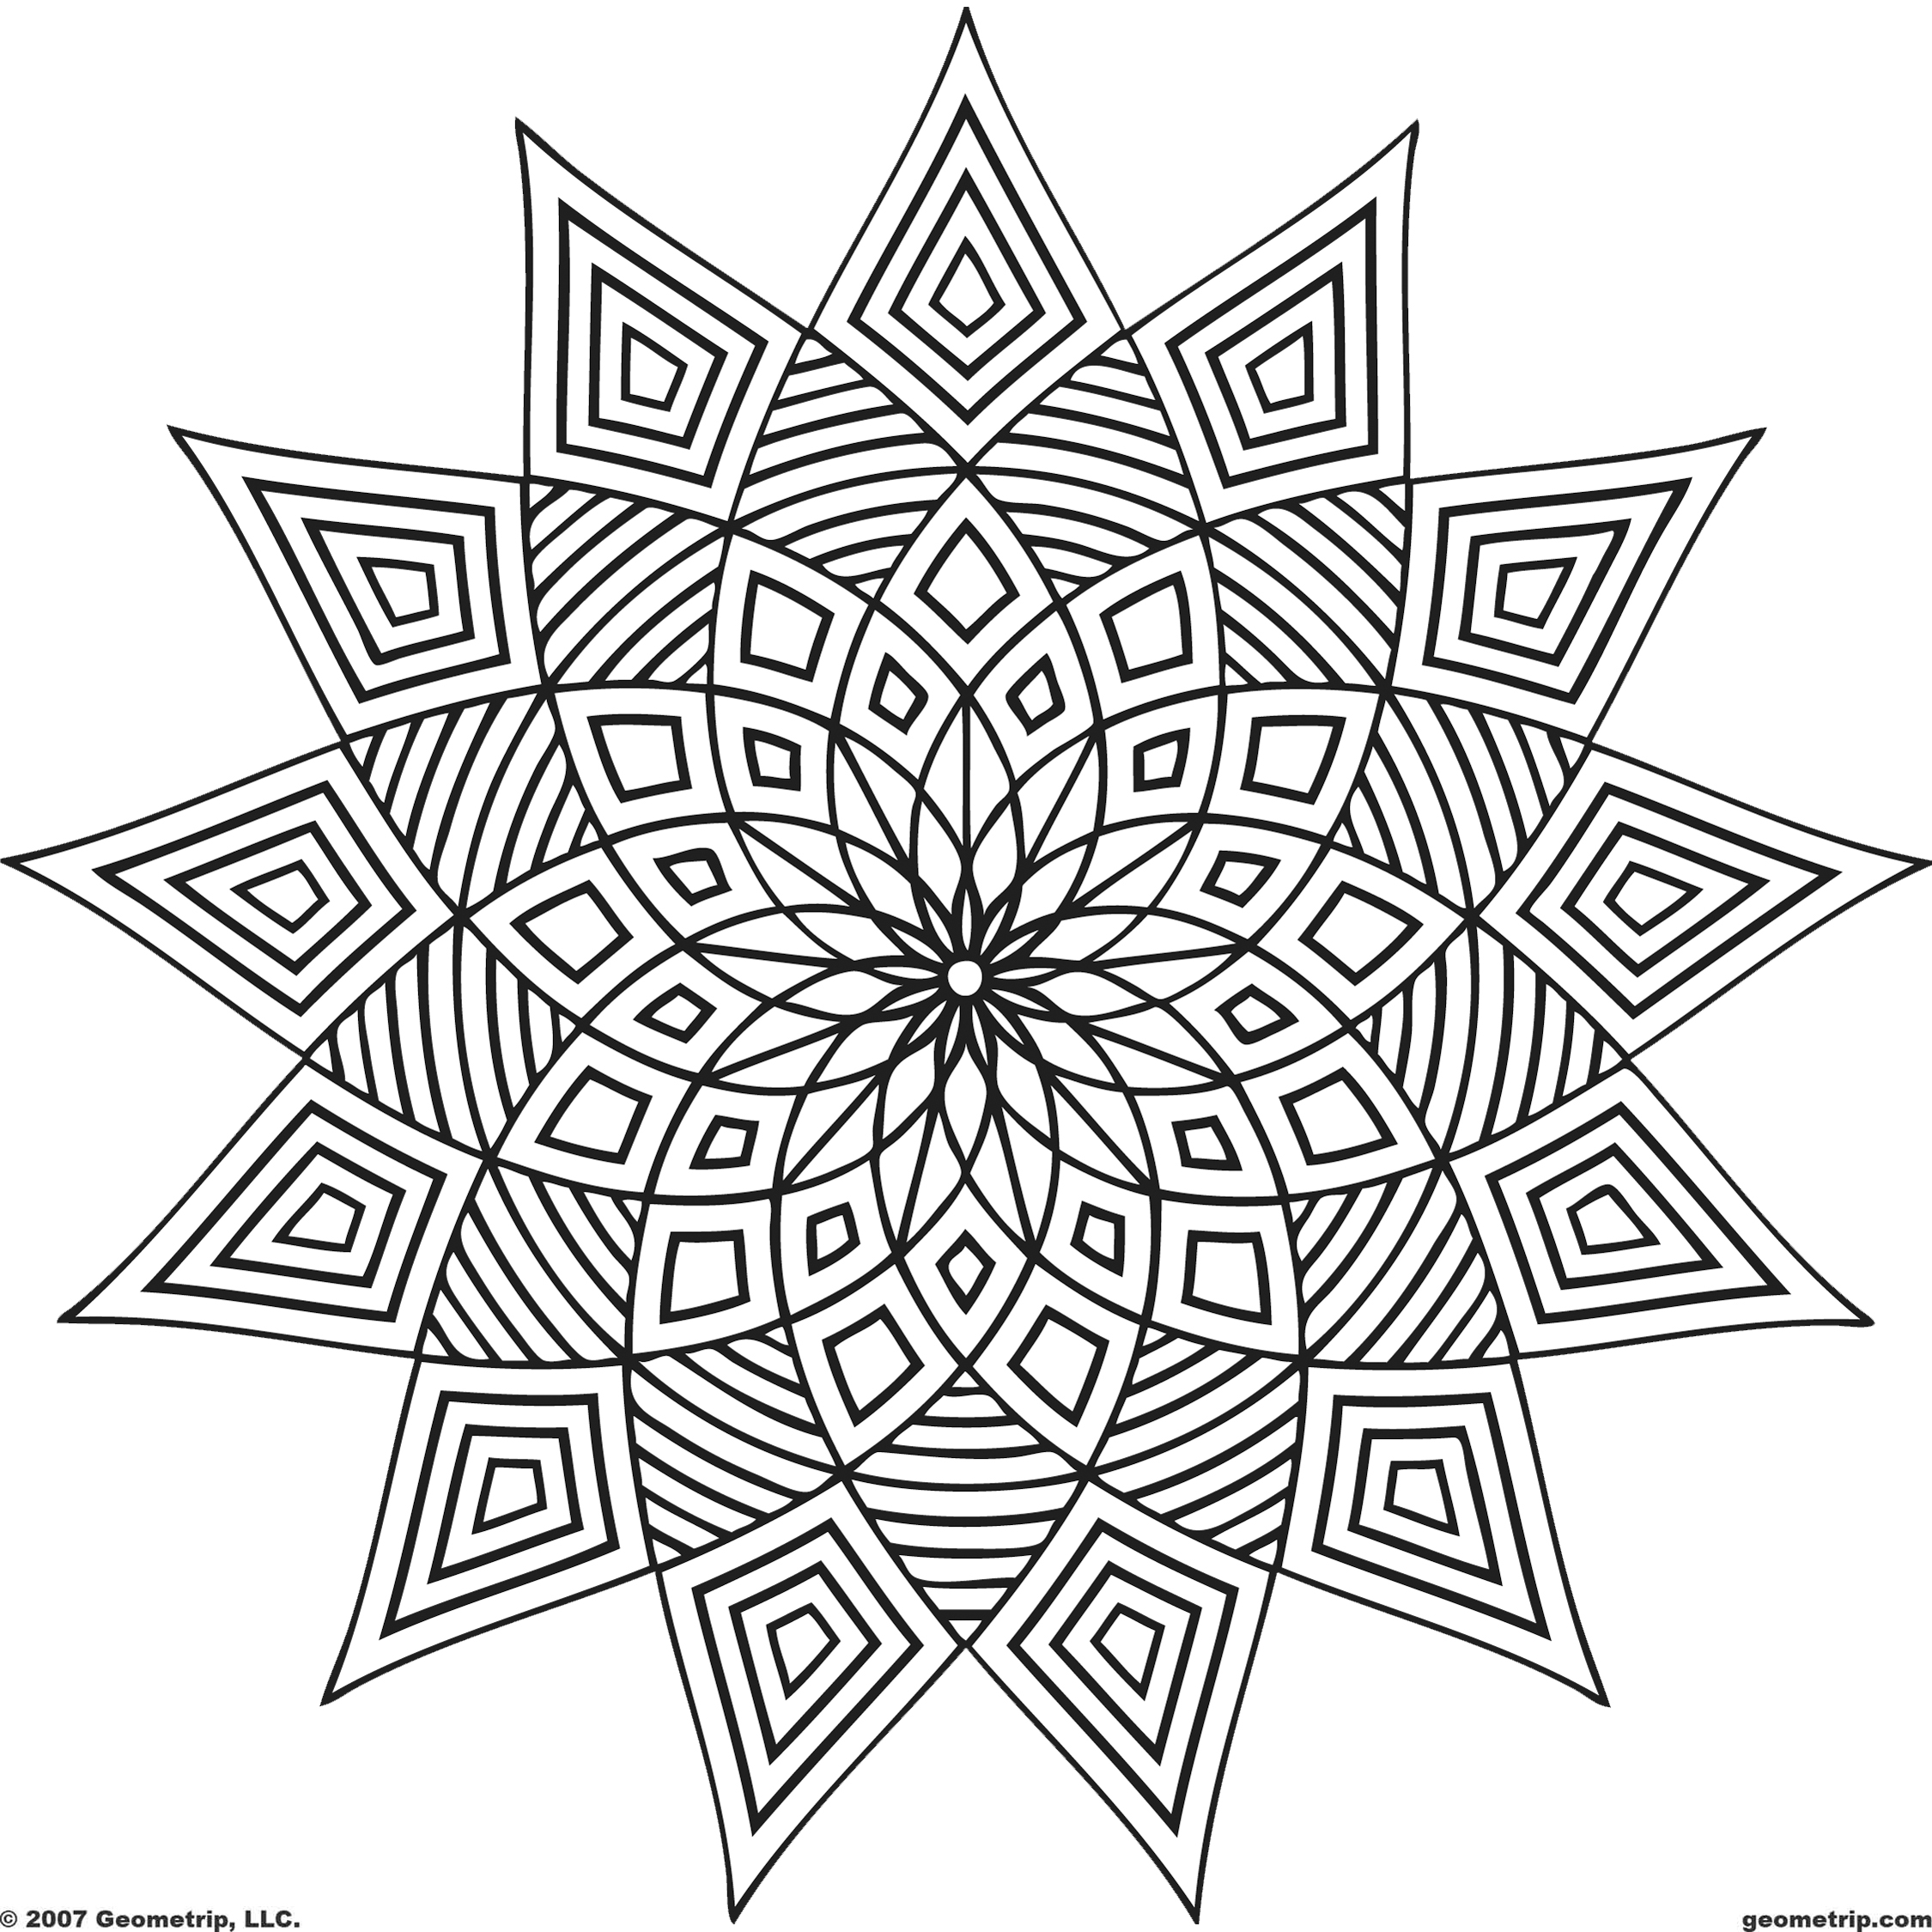 Coloring Pages Pdf : Free coloring pages of zentangle easy